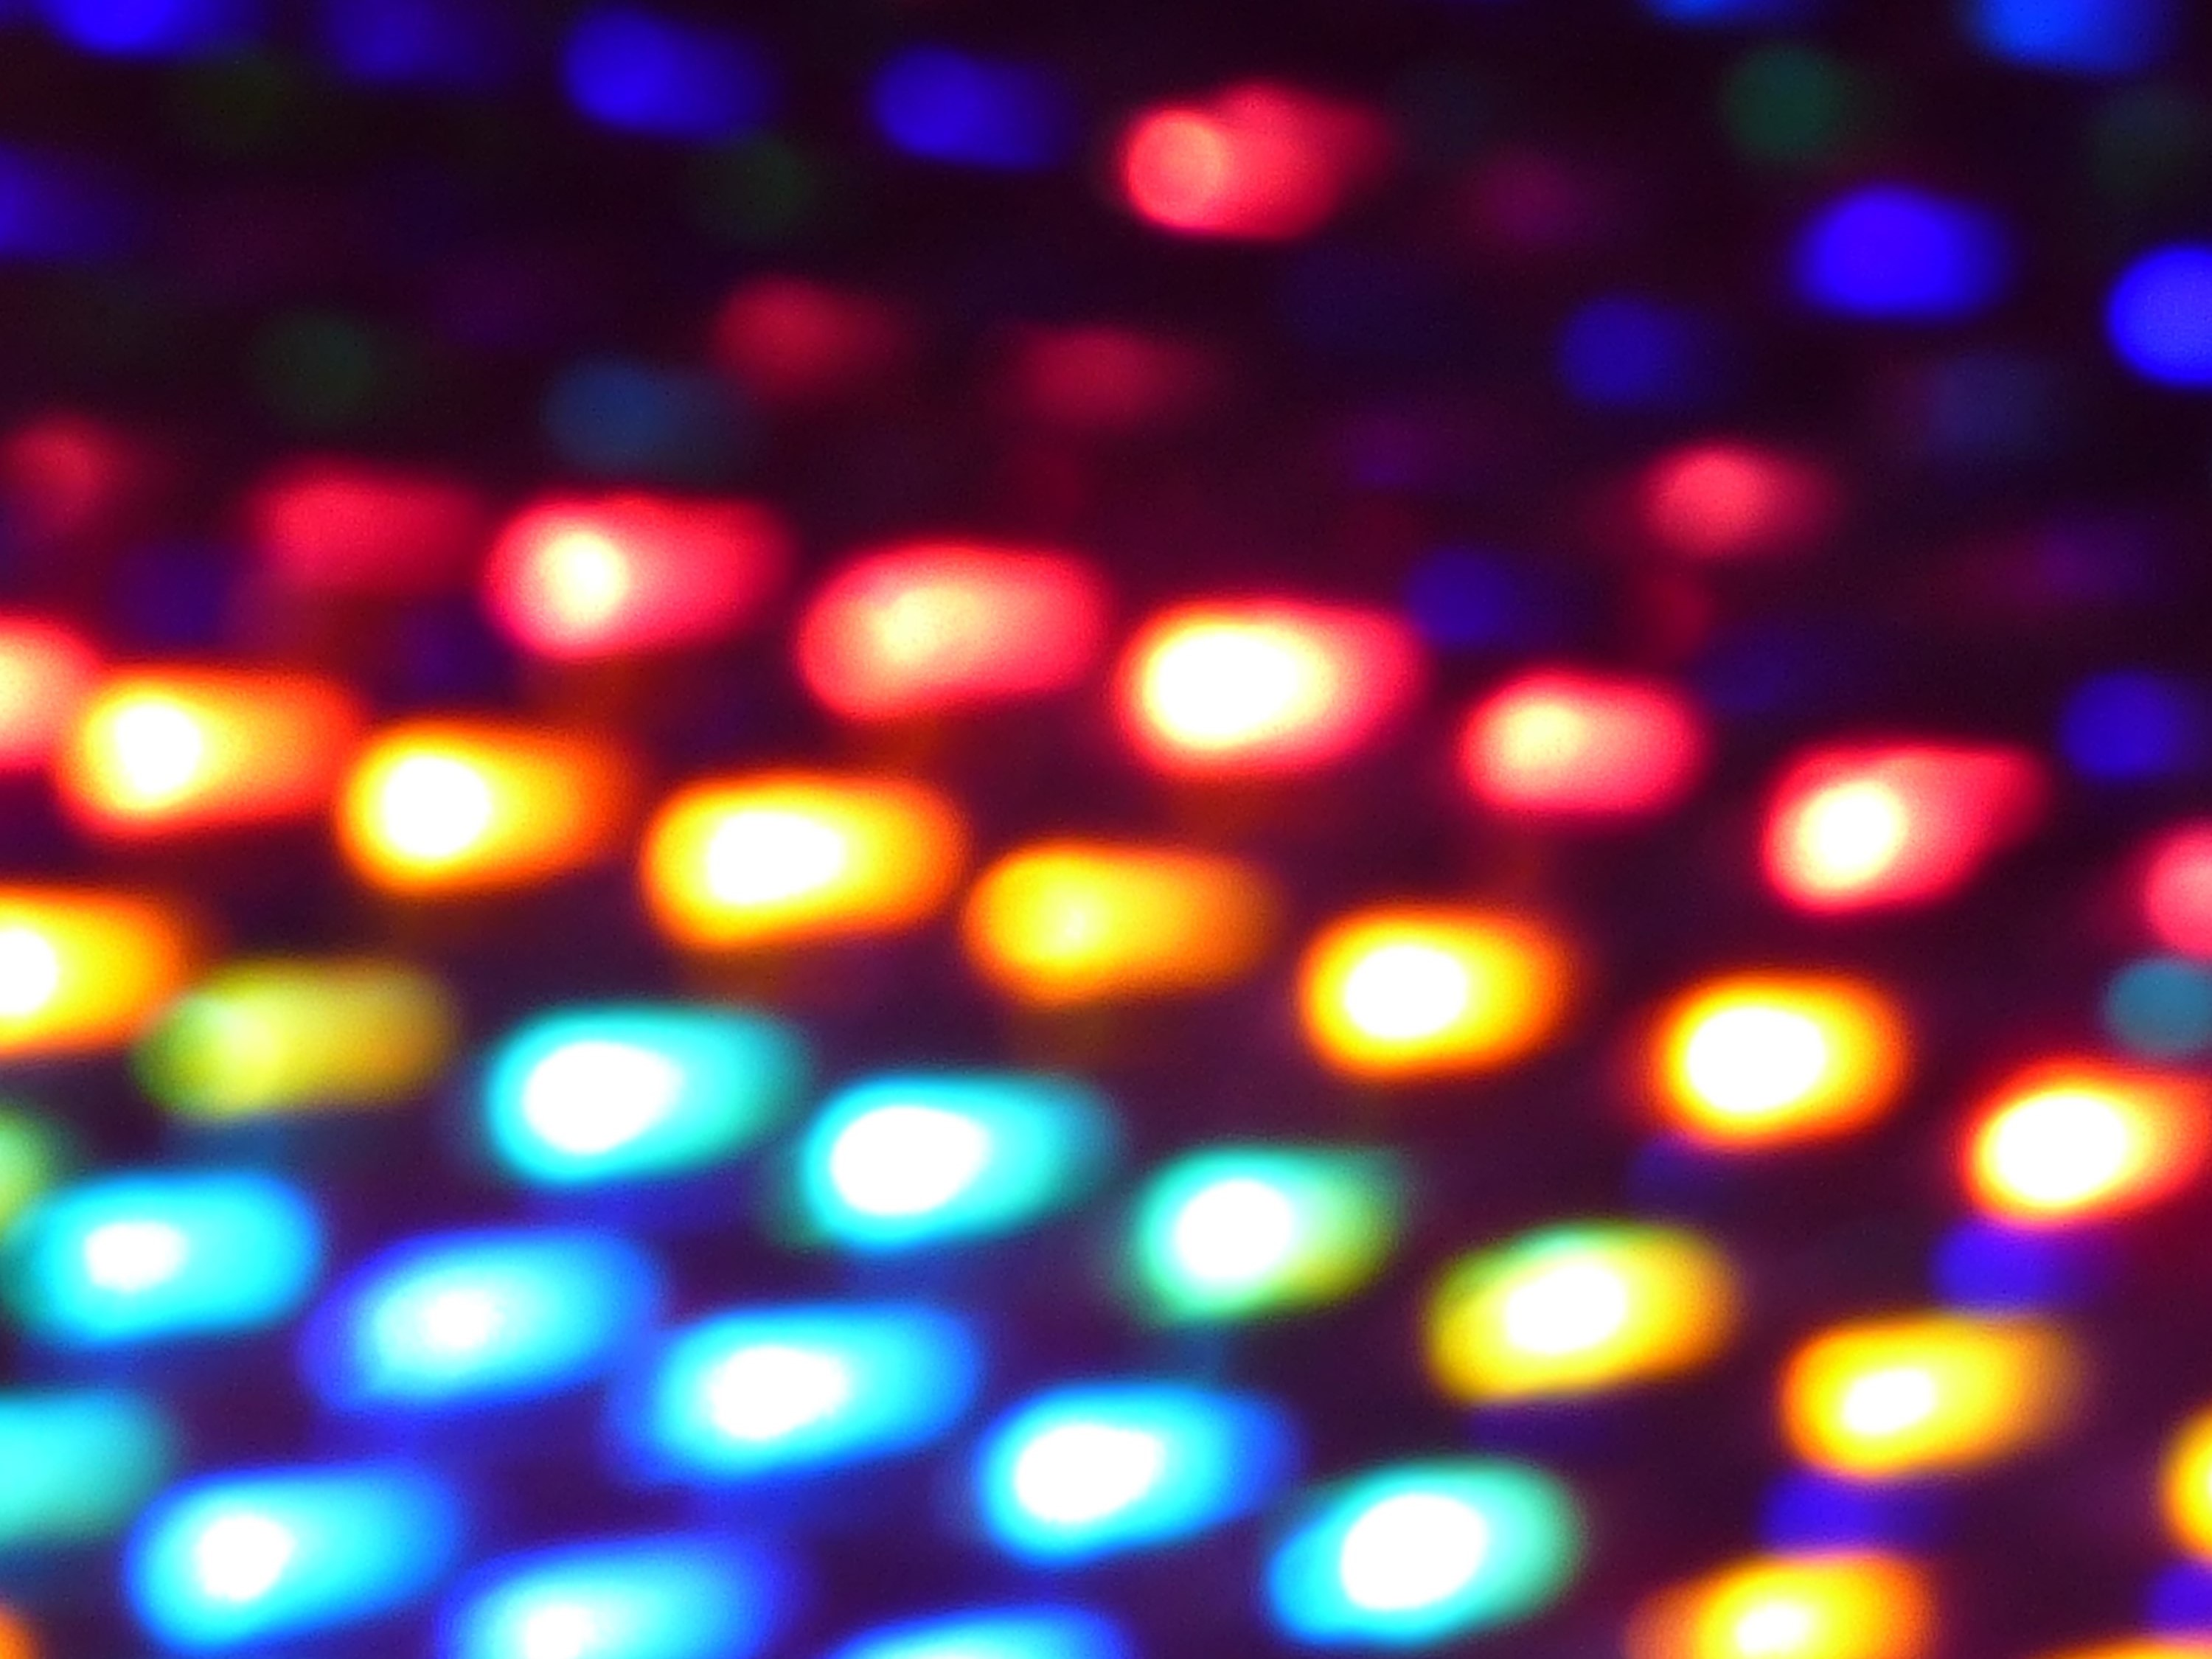 a soft focused background of glowing lights in a grid